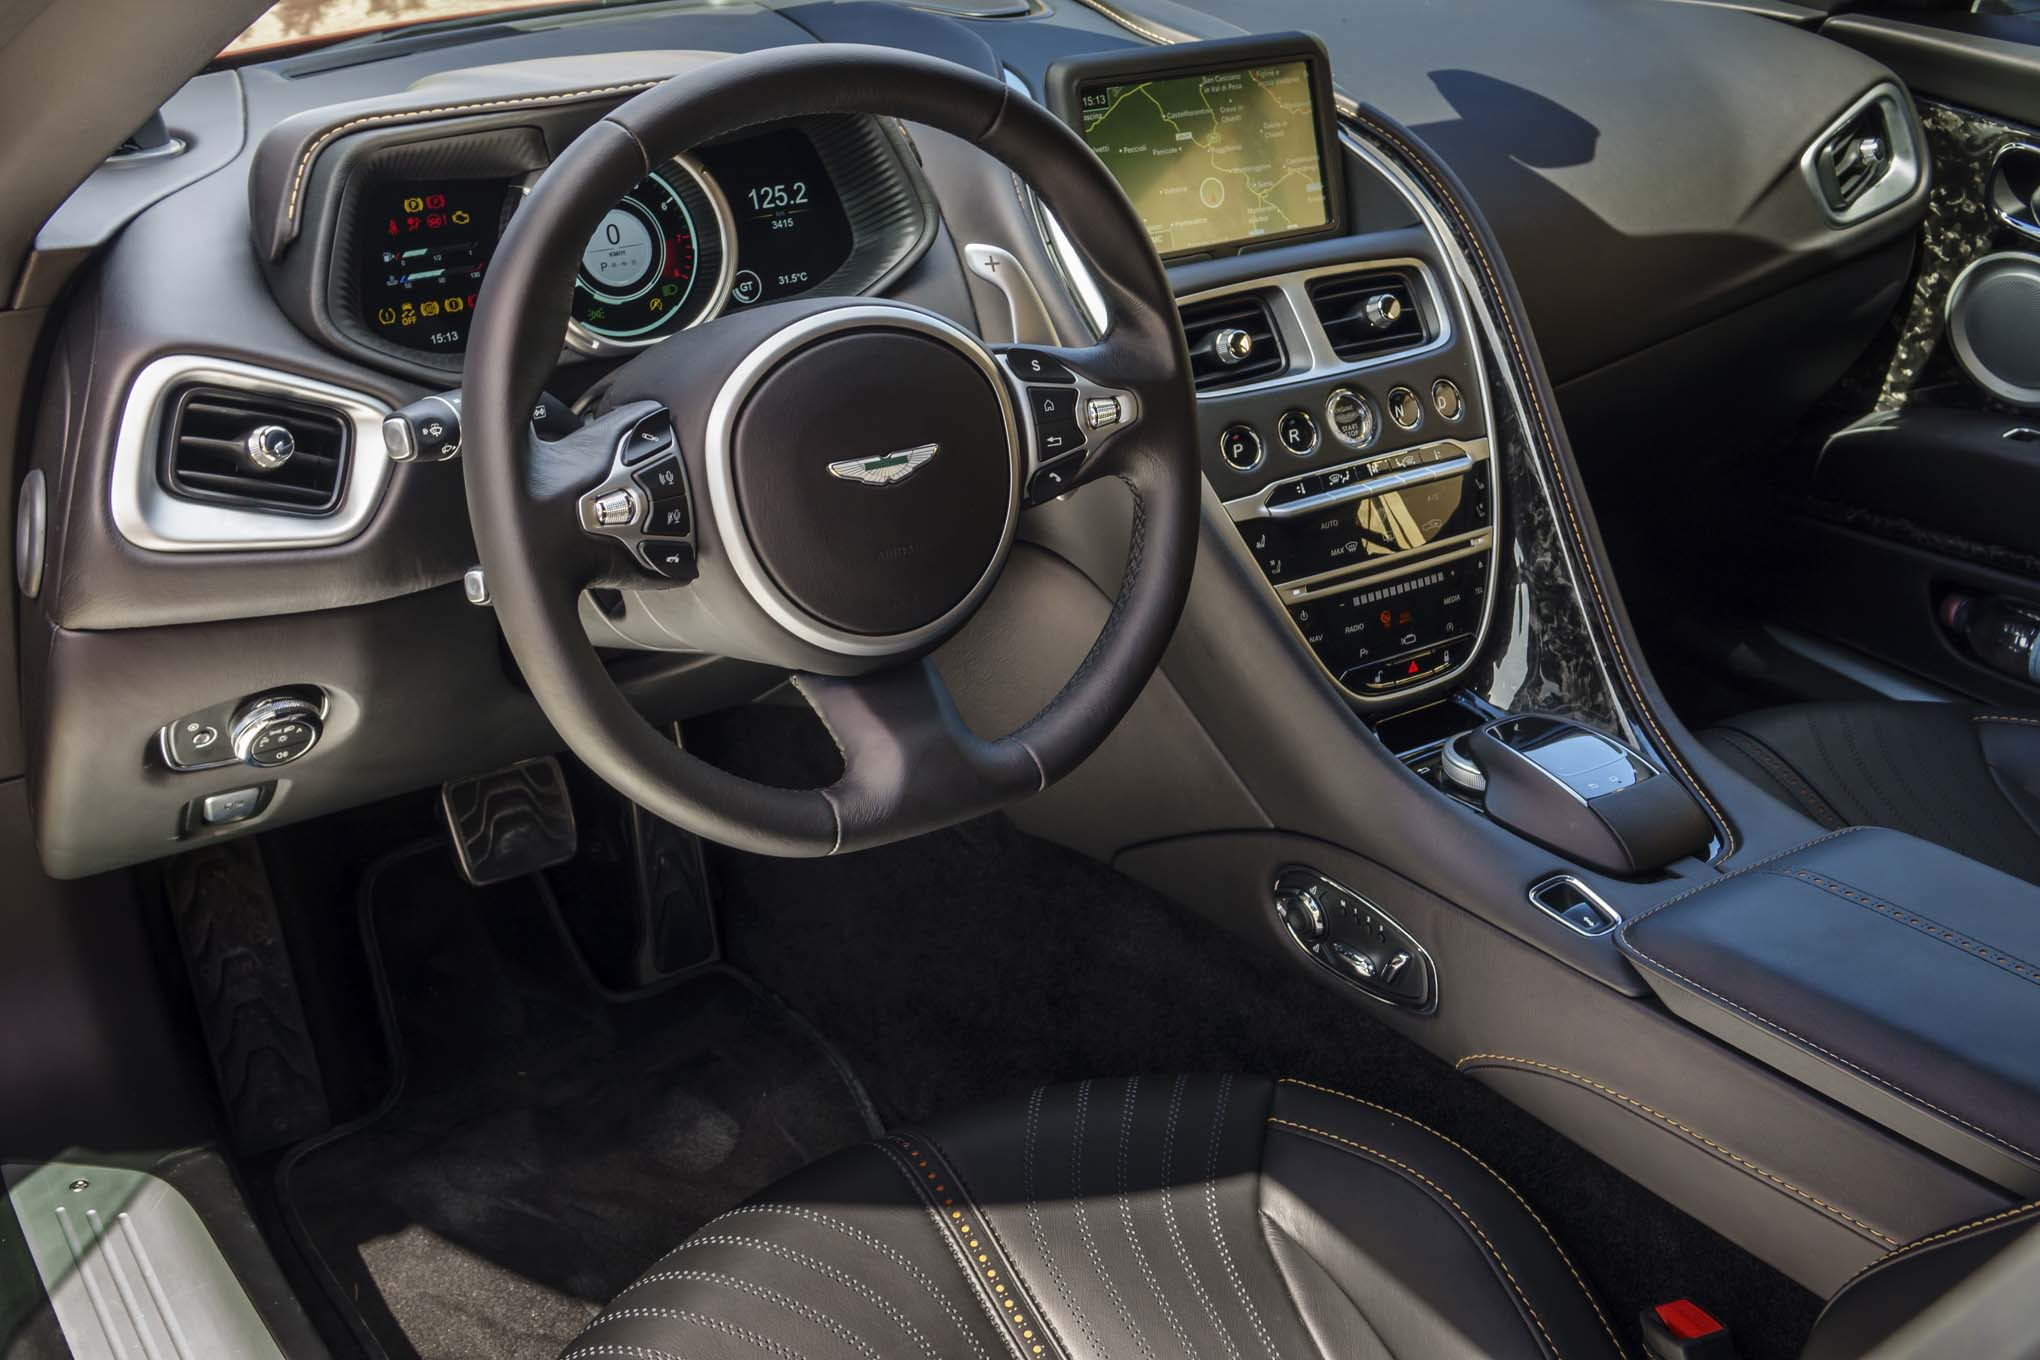 Aston Martin Db11 Spied With Mercedes Benz Interior Components